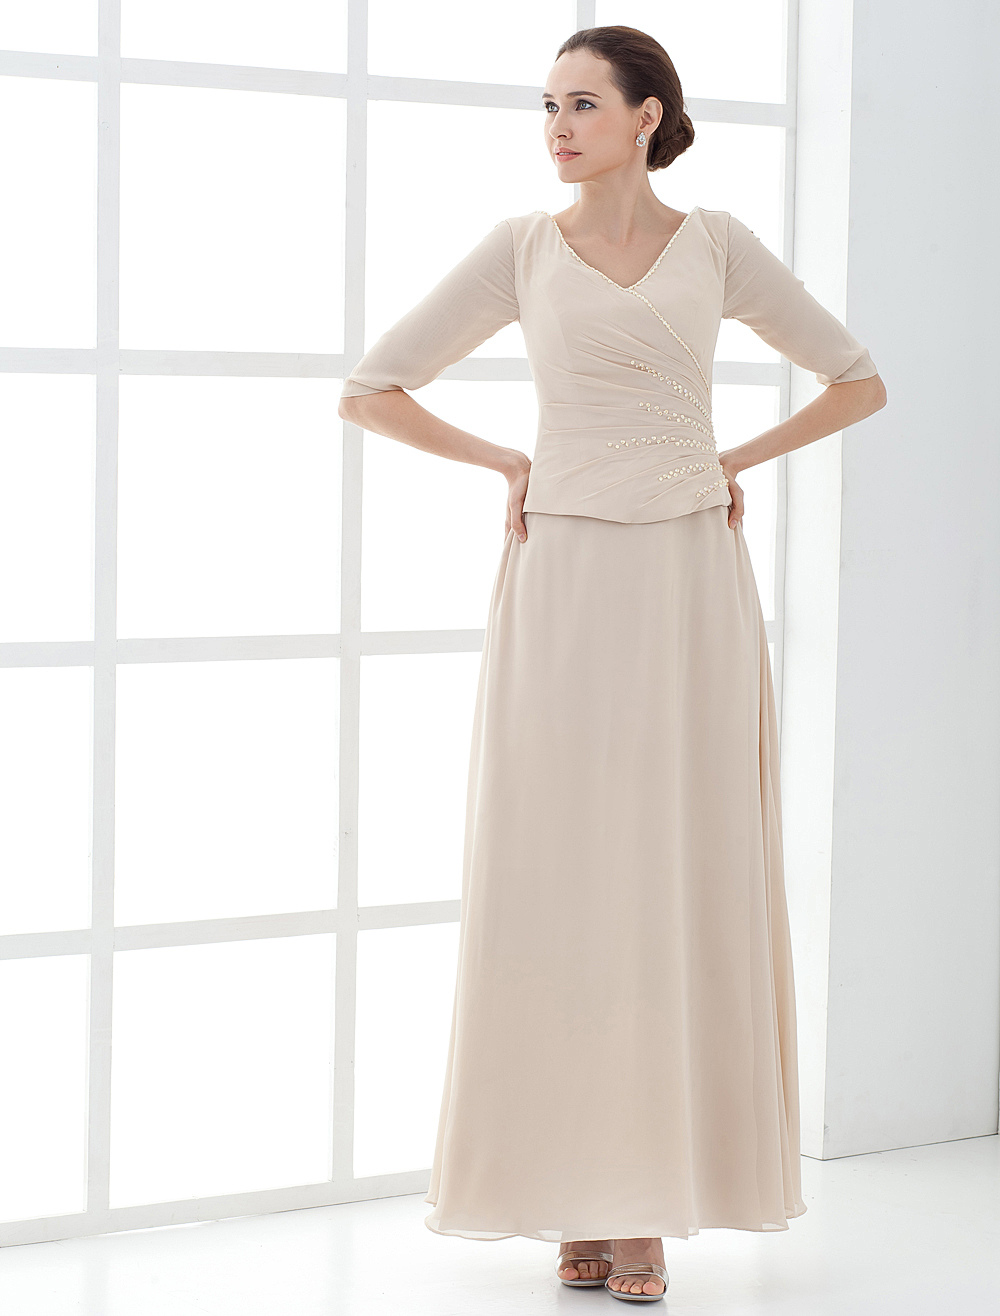 One-Piece V-Neck Satin Mother Of Bride And Groom Dress Wedding Guest Dress